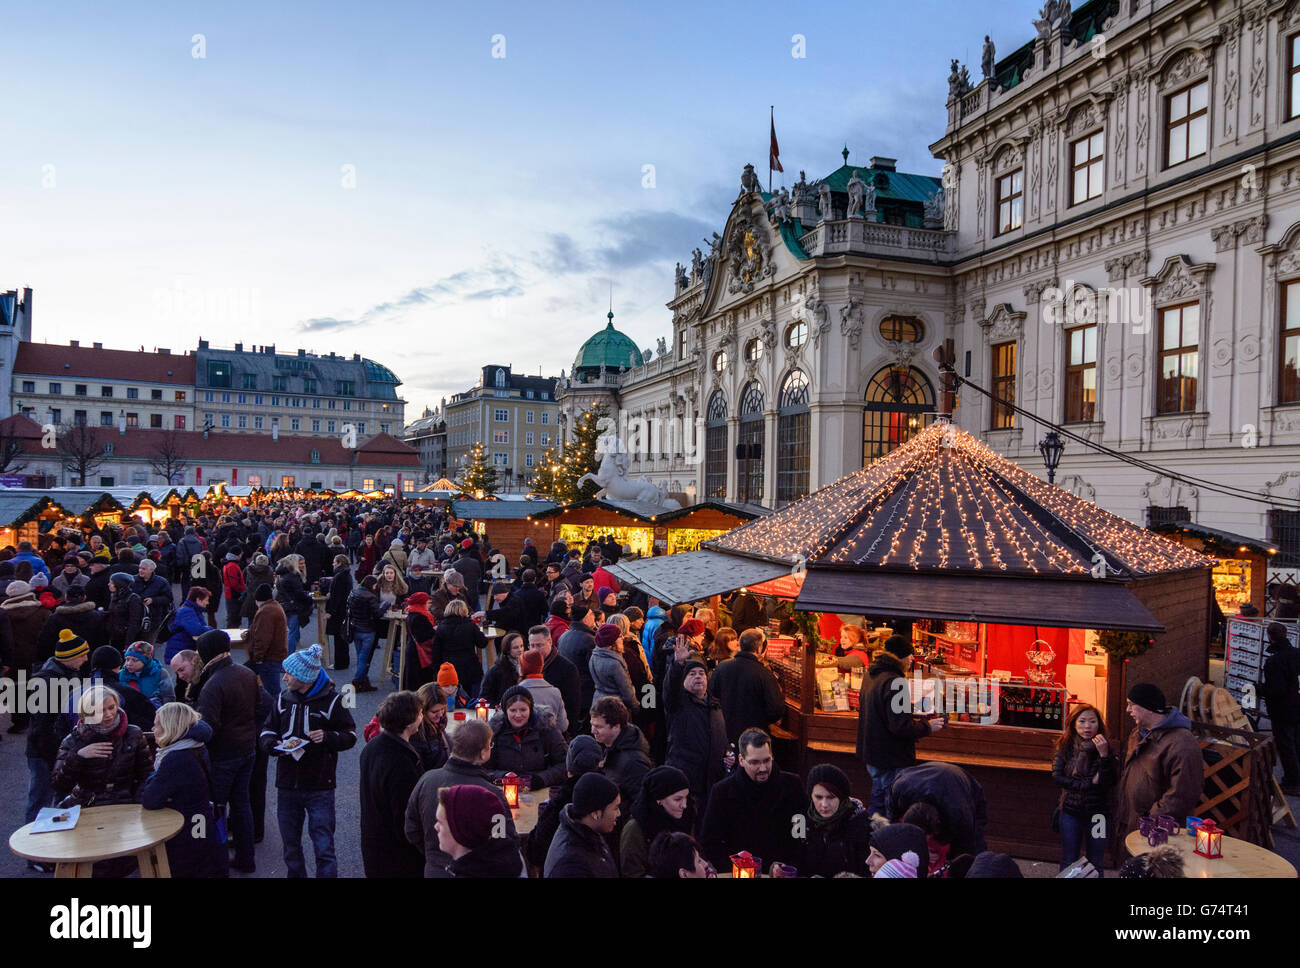 Bel Veder Dortmund Advent And Christmas Market In Front Of Belvedere Palace Wien